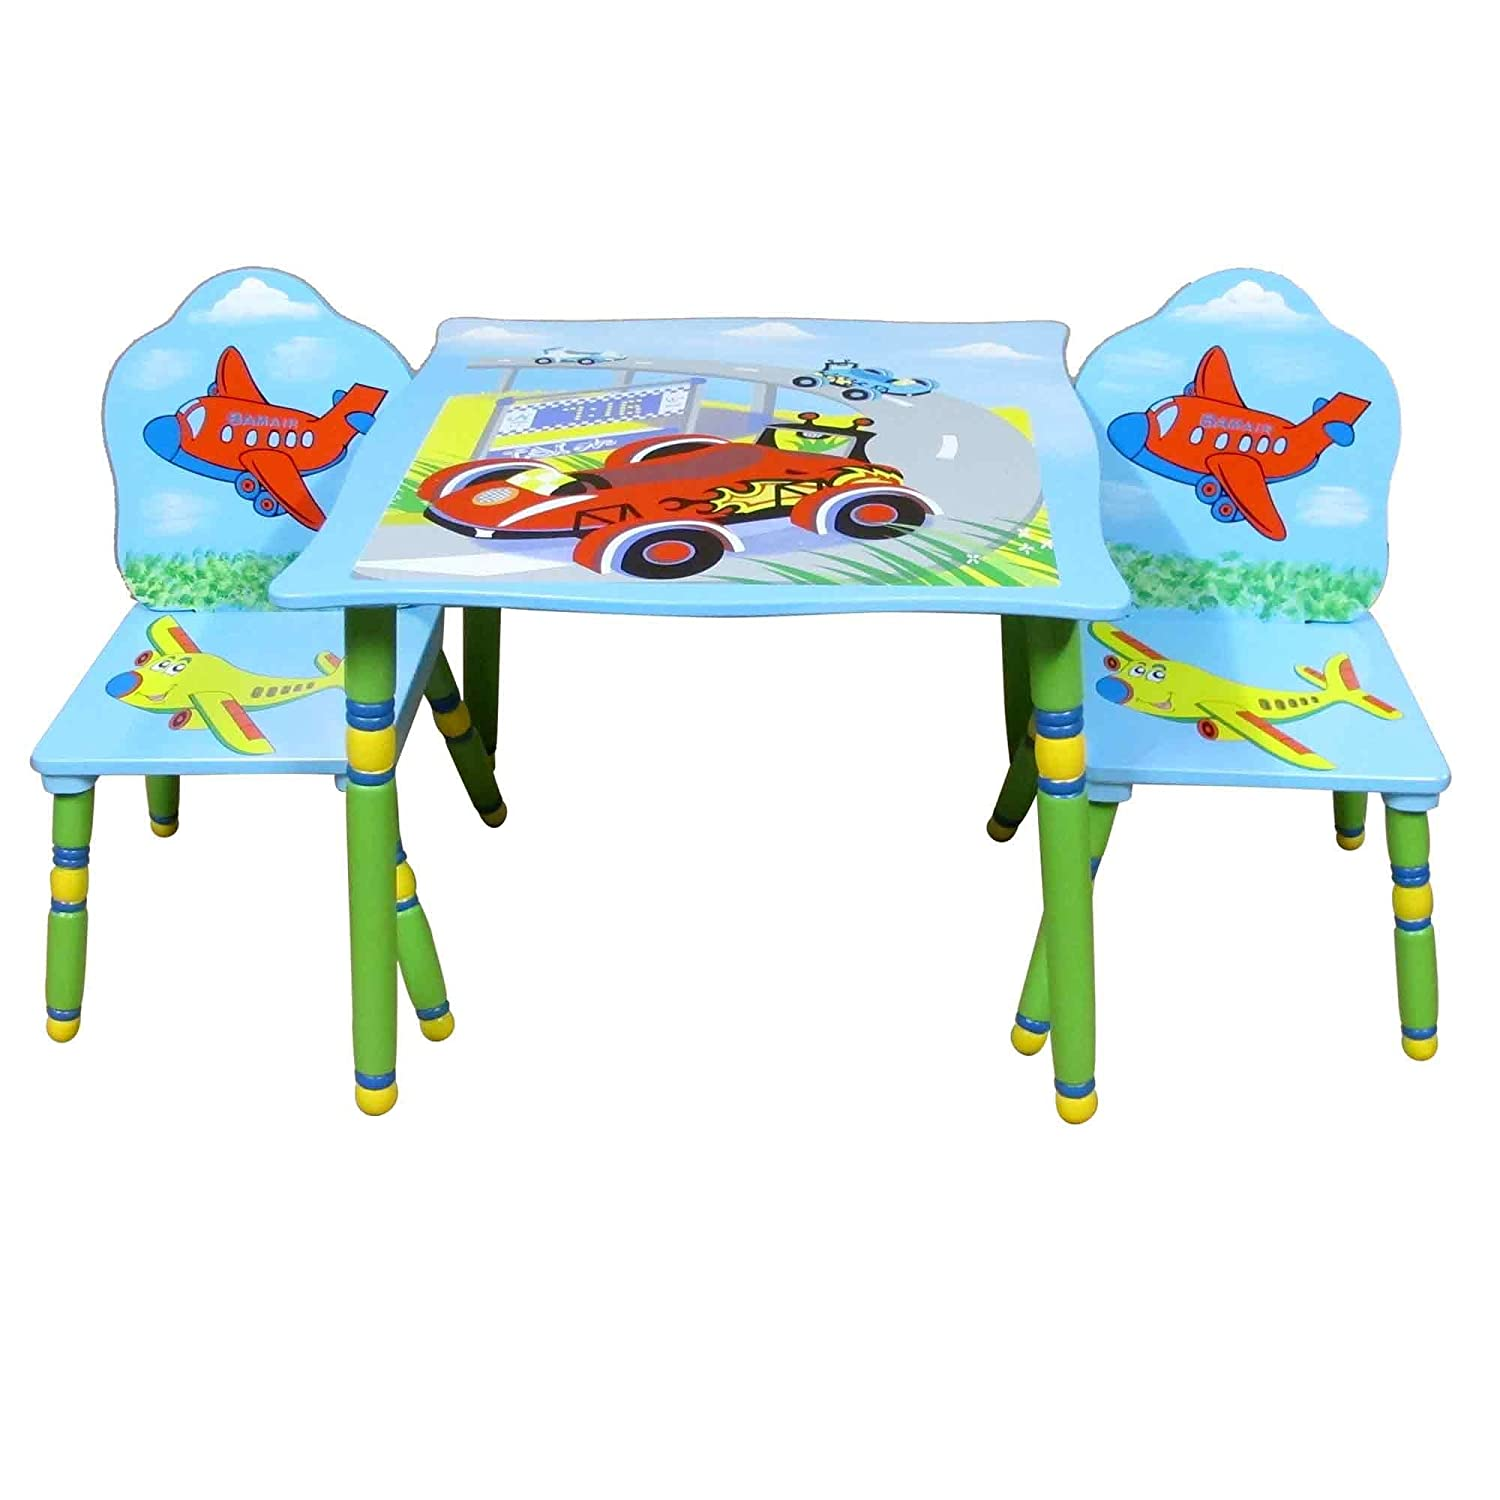 Liberty House Toys Transport Table and Chair Set LHT10032B